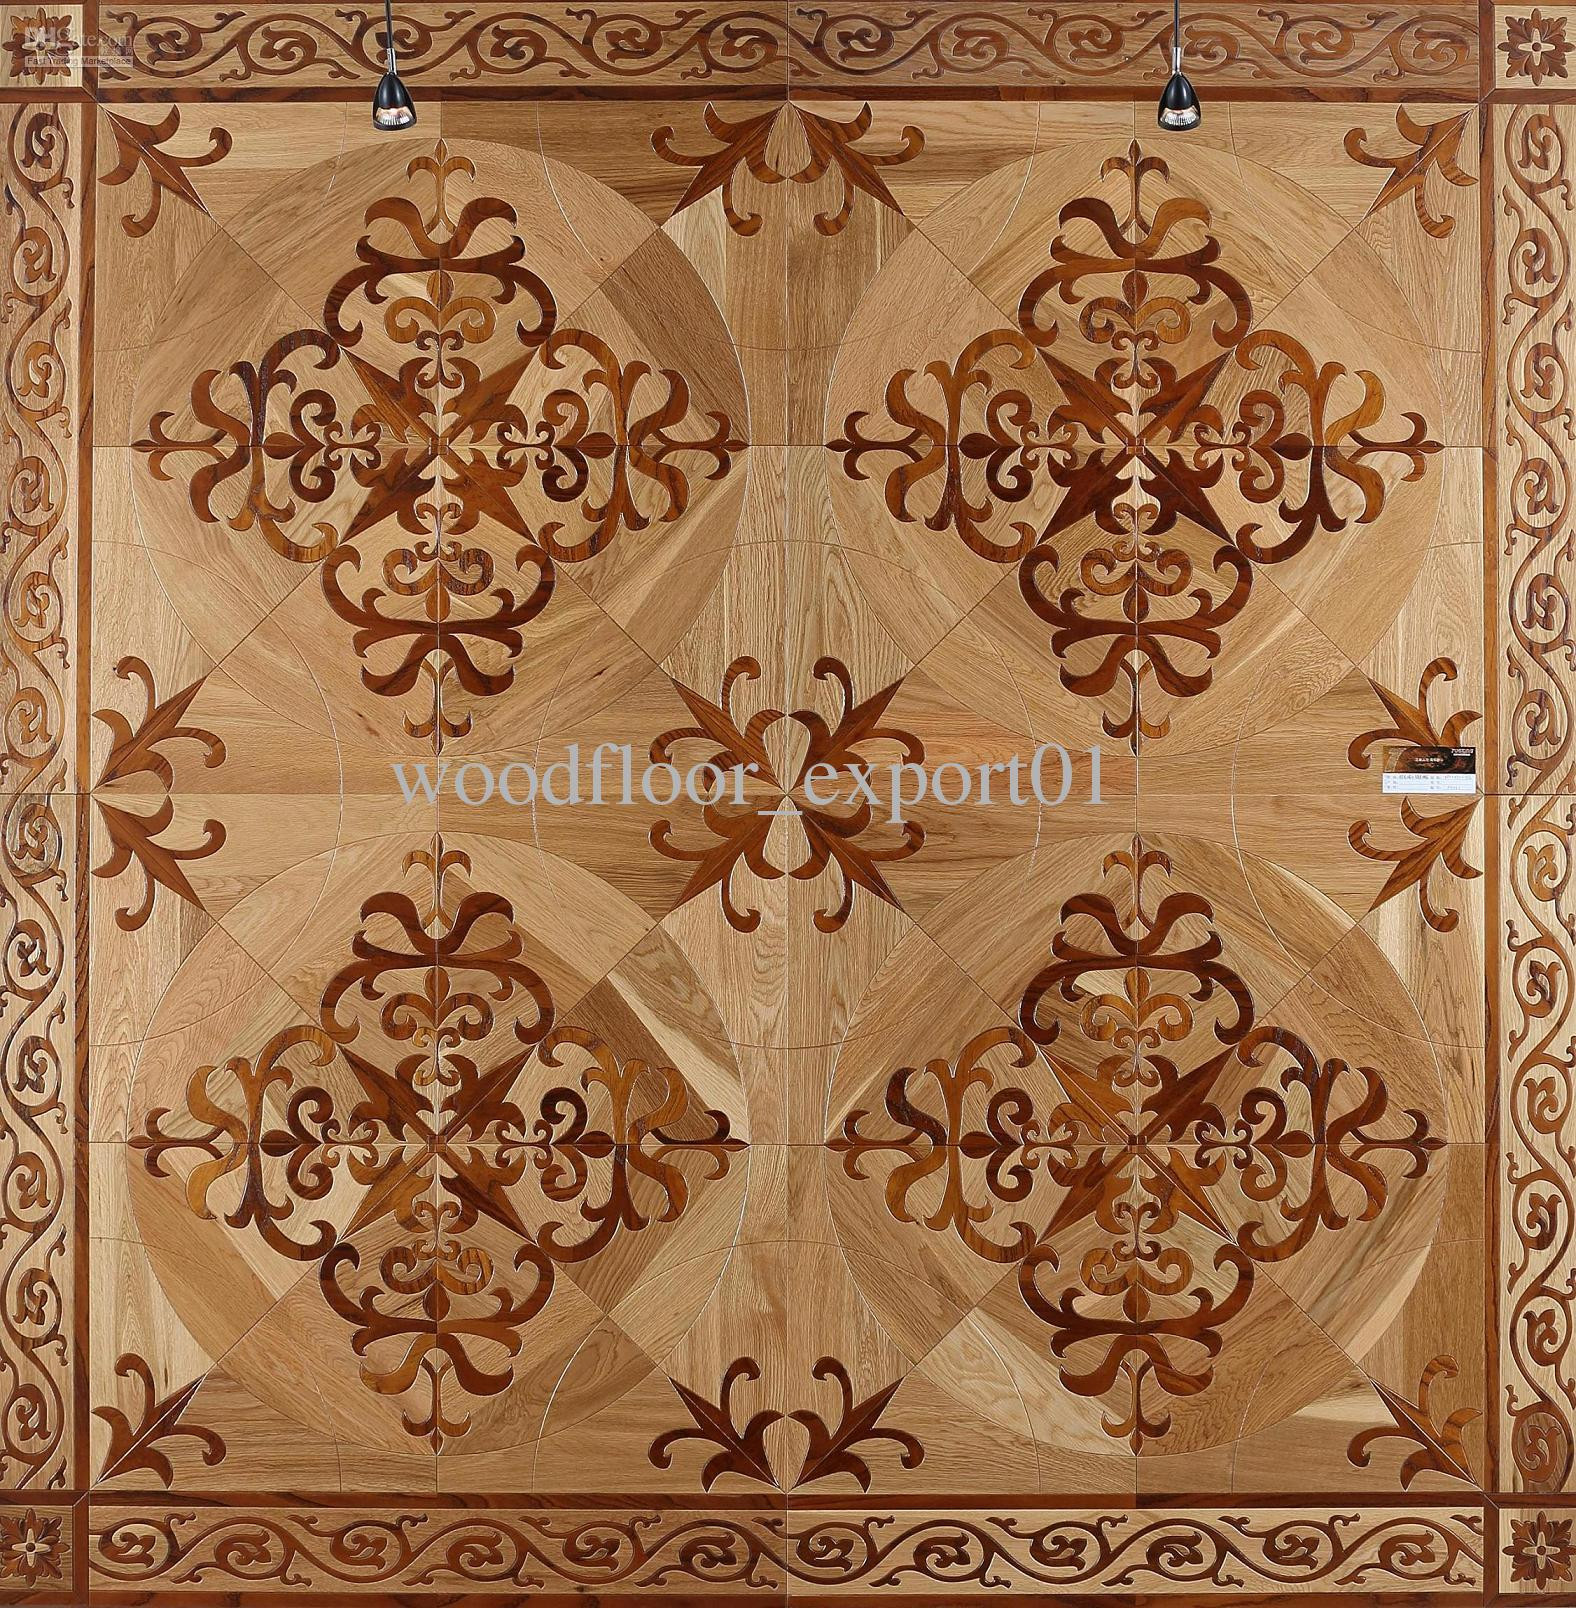 Tongue and Groove Hardwood Flooring Prices Of Flower Pattern Art Parquet Wood Flooring Tiles asian Pear Sapele with Flower Pattern Art Parquet Wood Flooring Tiles asian Pear Sapele Wood Floor Wood Wax Wood Floor Russia Oak Wood Floor Wings Wood Flooring Hardwood Flooring